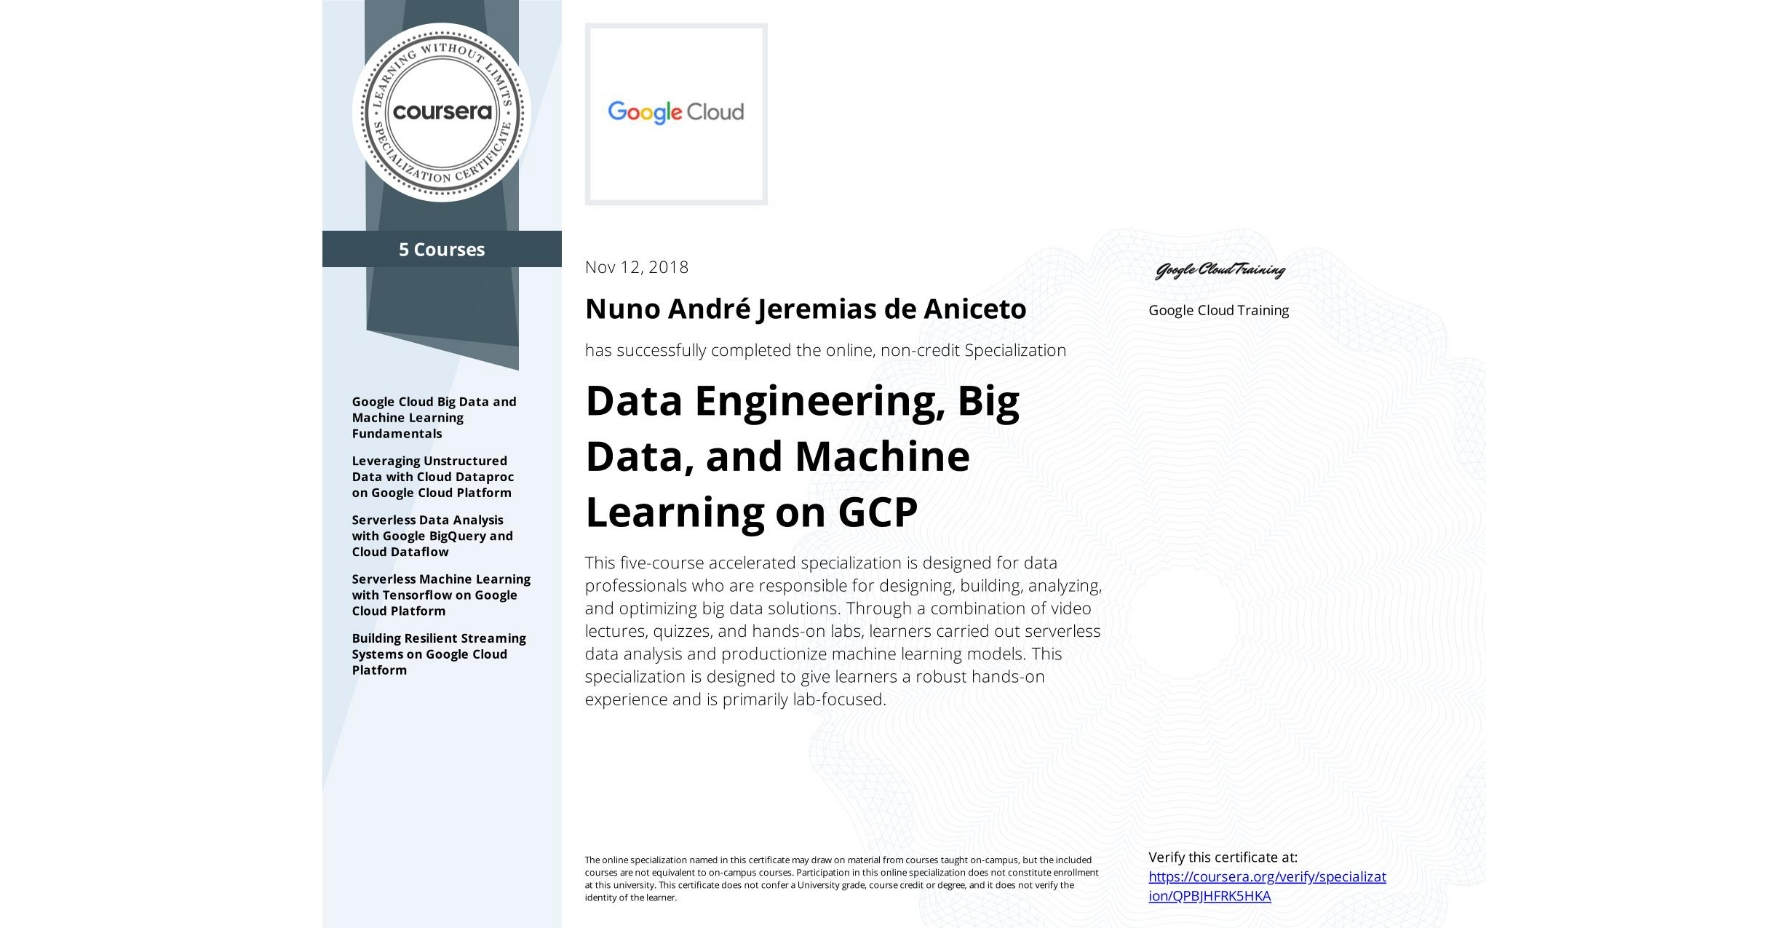 View certificate for Nuno André Jeremias de Aniceto, Data Engineering, Big Data, and Machine Learning on GCP, offered through Coursera. This five-course accelerated specialization is designed for data professionals who are responsible for designing, building, analyzing, and optimizing big data solutions. Through a combination of video lectures, quizzes, and hands-on labs, learners carried out serverless data analysis and productionize machine learning models. This specialization is designed to give learners a robust hands-on experience and is primarily lab-focused.